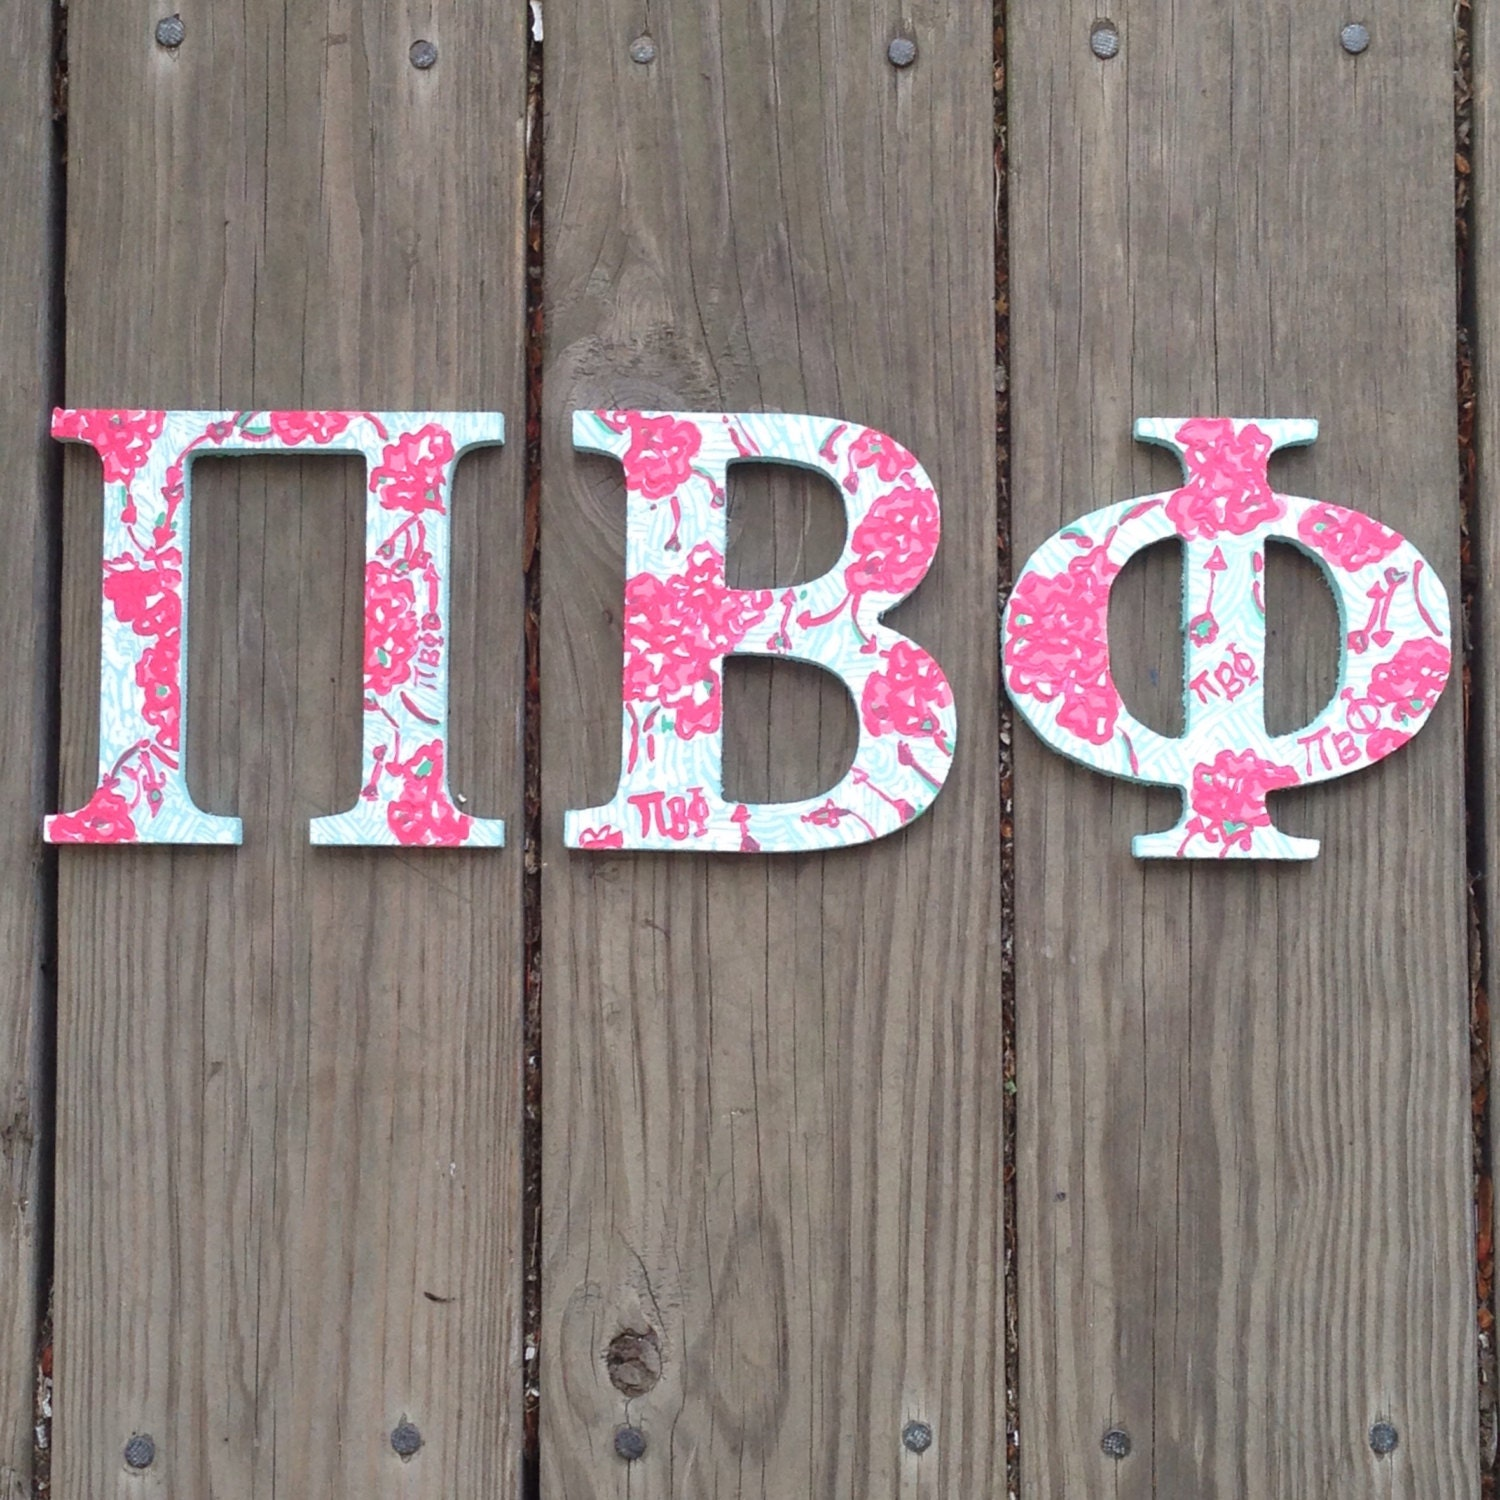 pi beta phi wooden letters lilly pulitzer letters sorority letters pi phi letters lilly letters lilly pulitzer sorority print